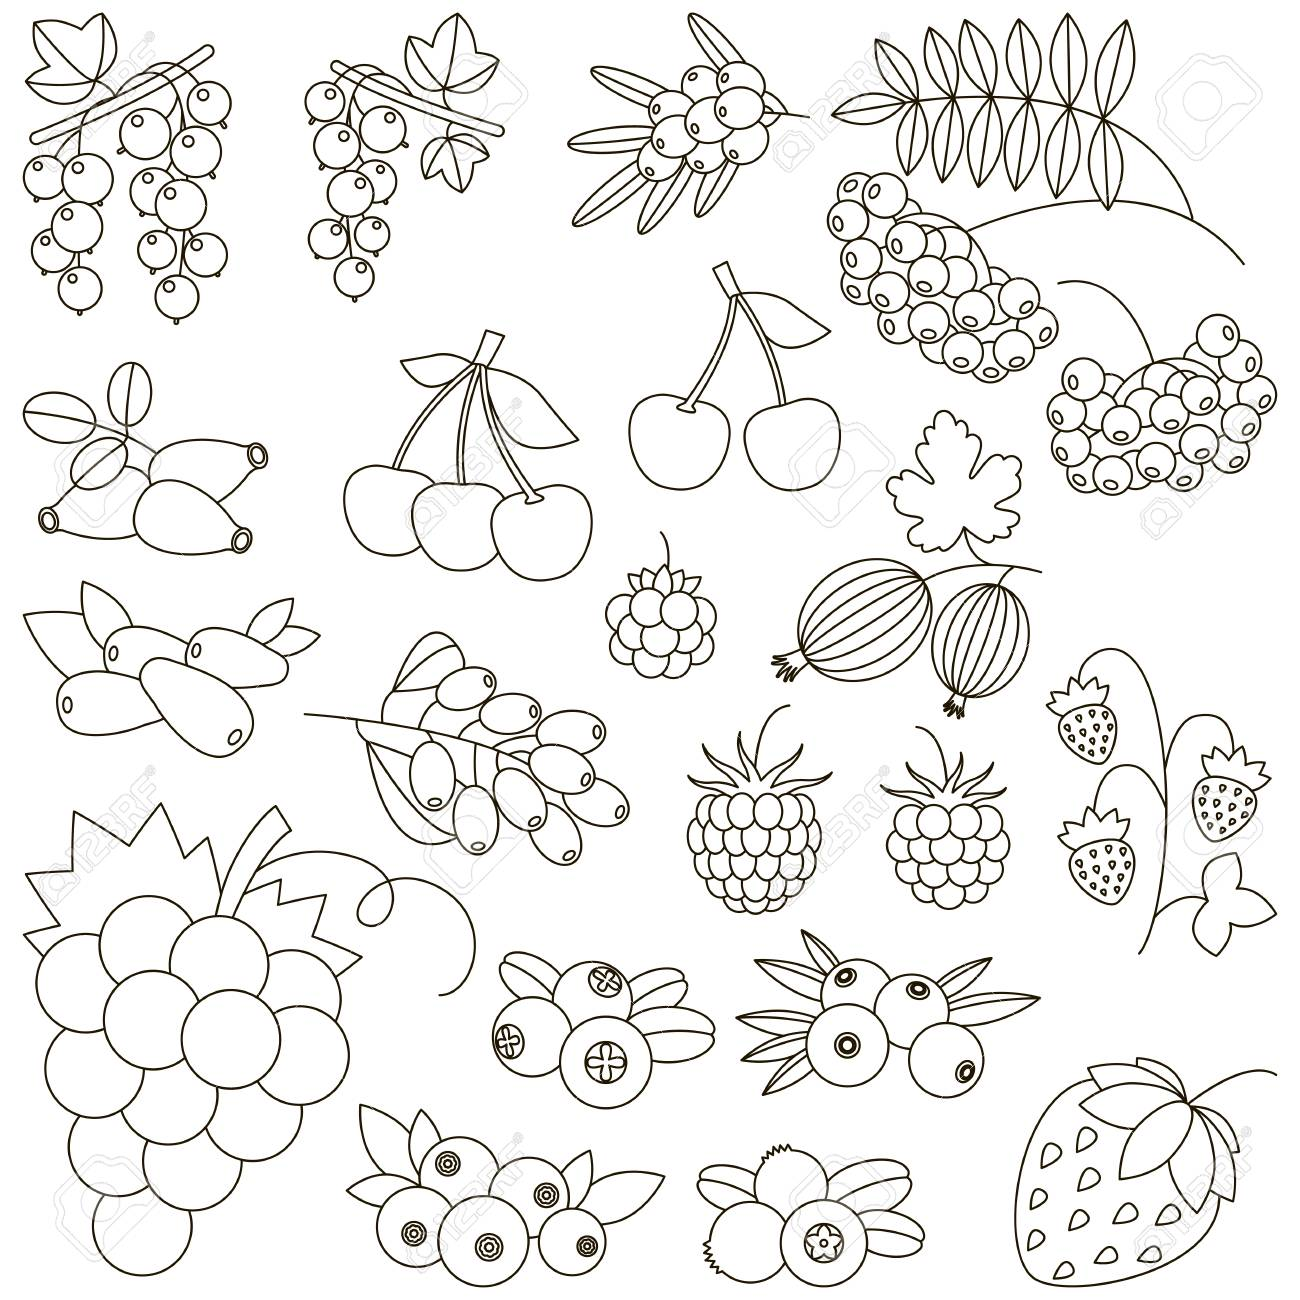 Berry Set To Be Colored Coloring Book To Educate Kids Learn Royalty Free Cliparts Vectors And Stock Illustration Image 74023405